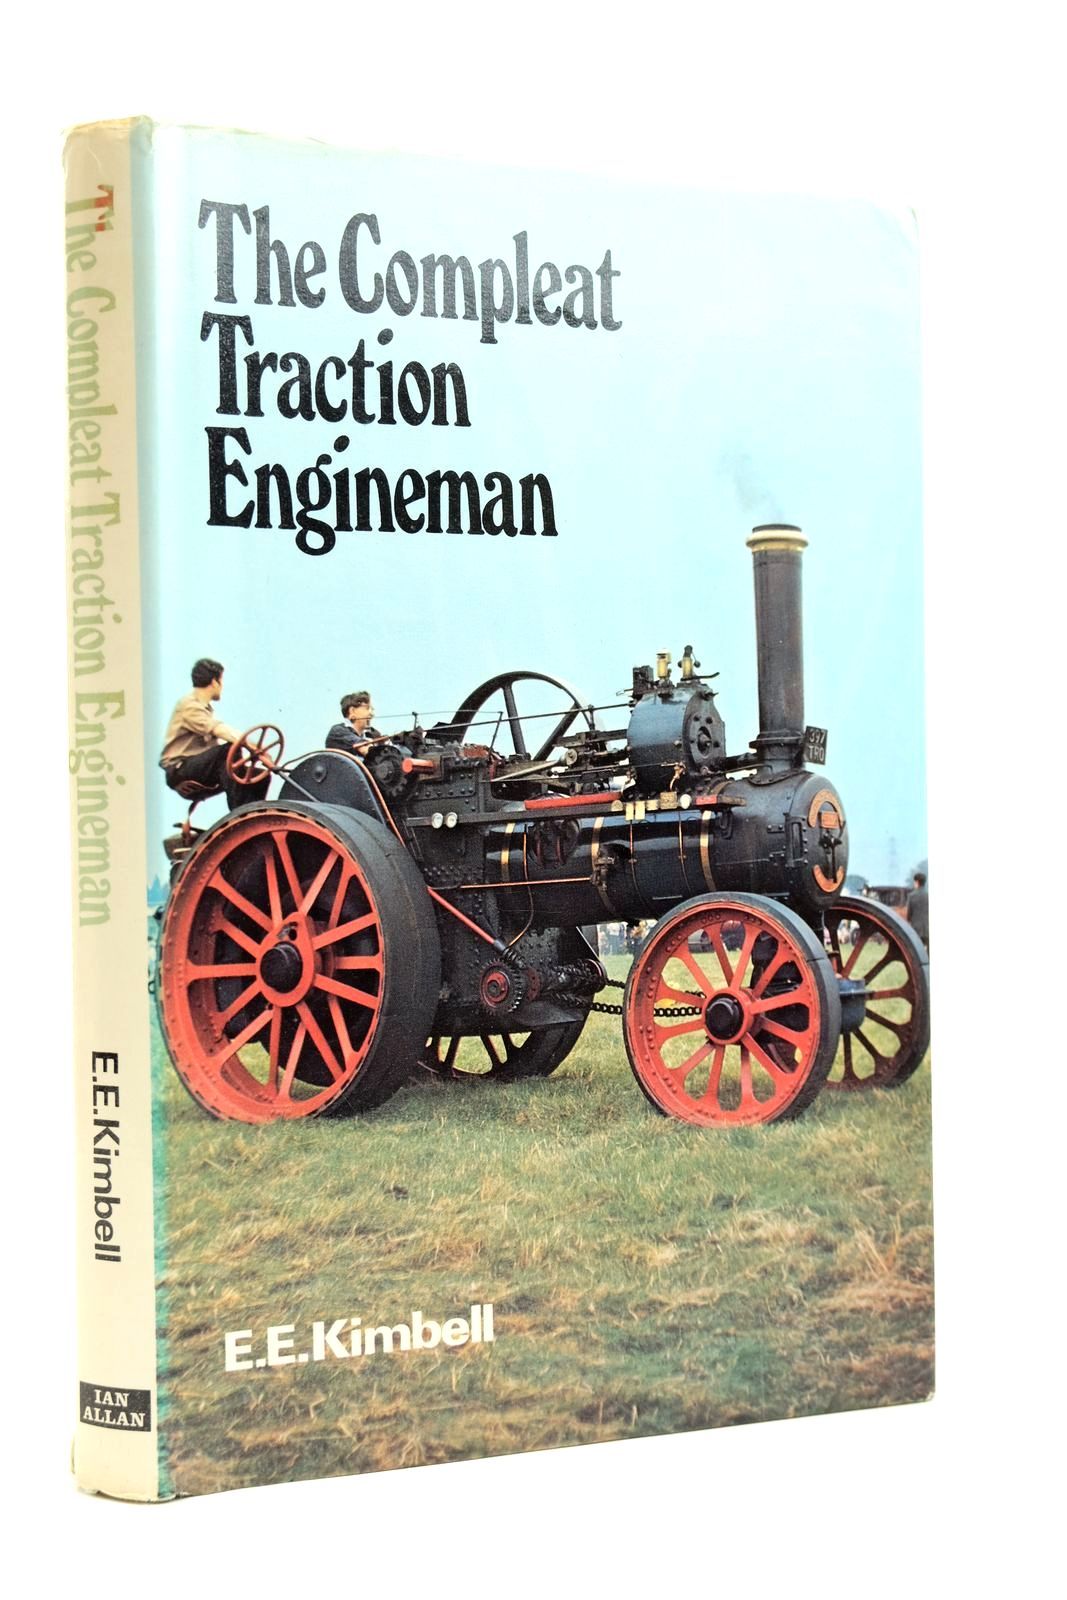 Photo of THE COMPLEAT TRACTION ENGINEMAN written by Kimbell, E.E. published by Ian Allan (STOCK CODE: 2131874)  for sale by Stella & Rose's Books